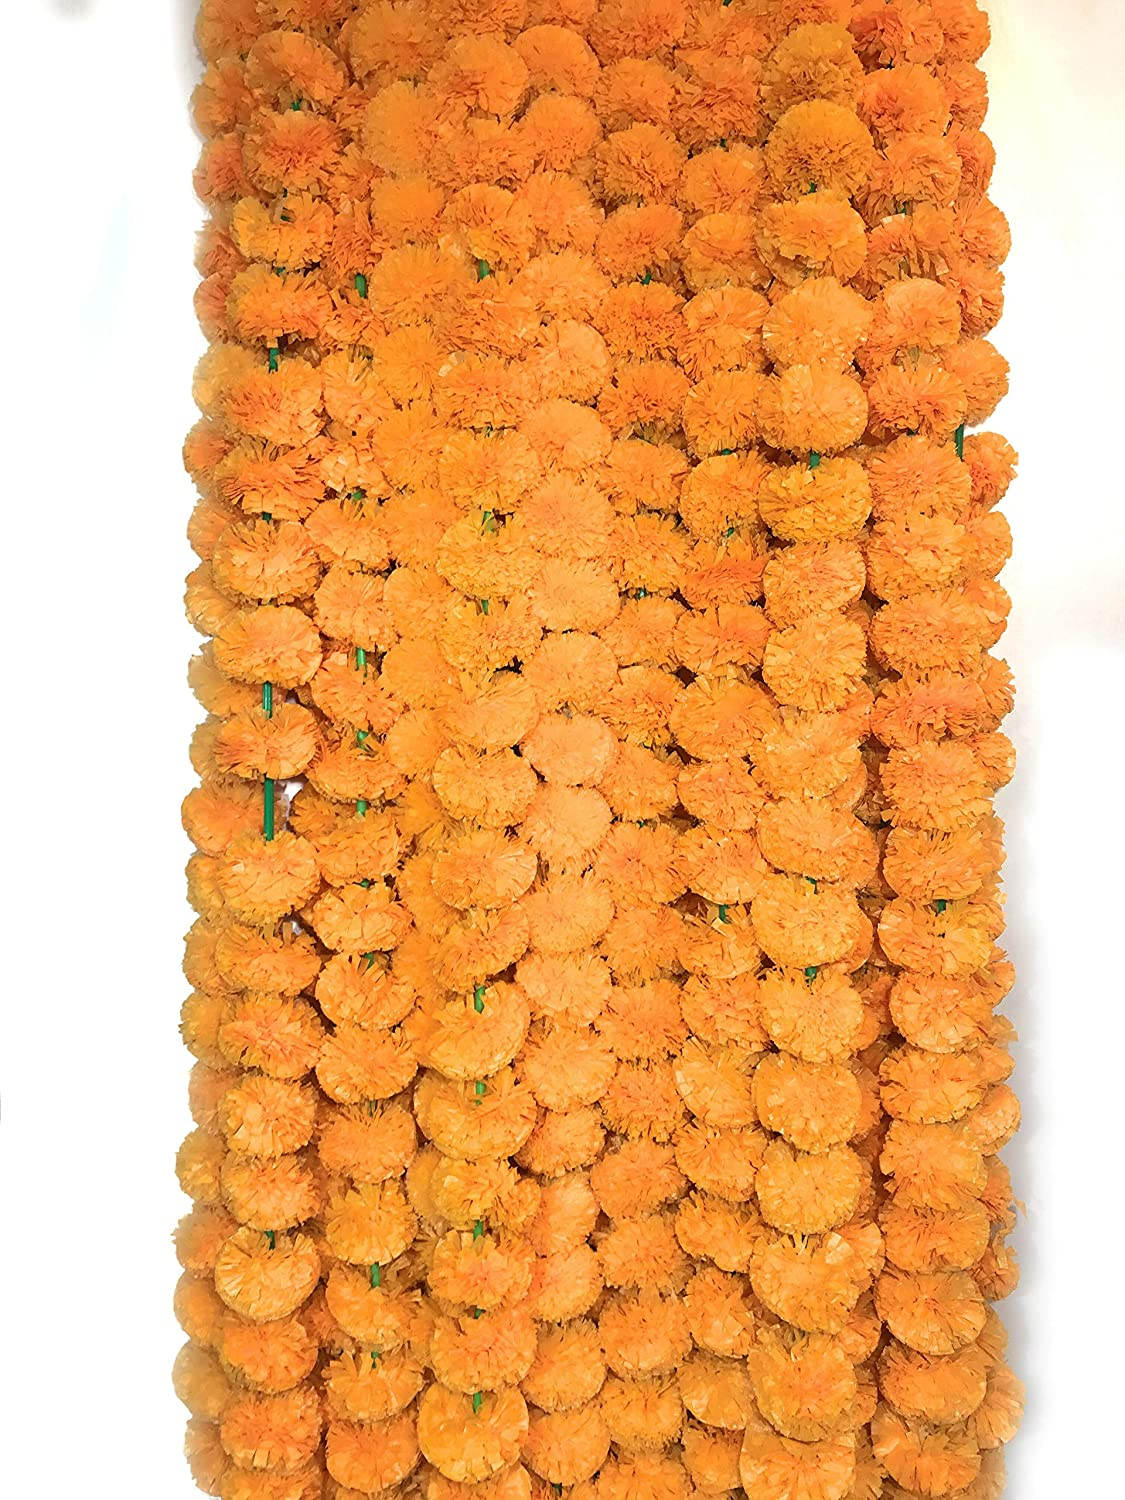 5 Pack Artificial Orange Marigold Flower Garlands 5 ft Long- for use in Parties, Celebrations, Indian Weddings, Indian Themed Event, Decorations, House Warming, Photo Prop, Diwali, Ganesh Fest R and D LTD.